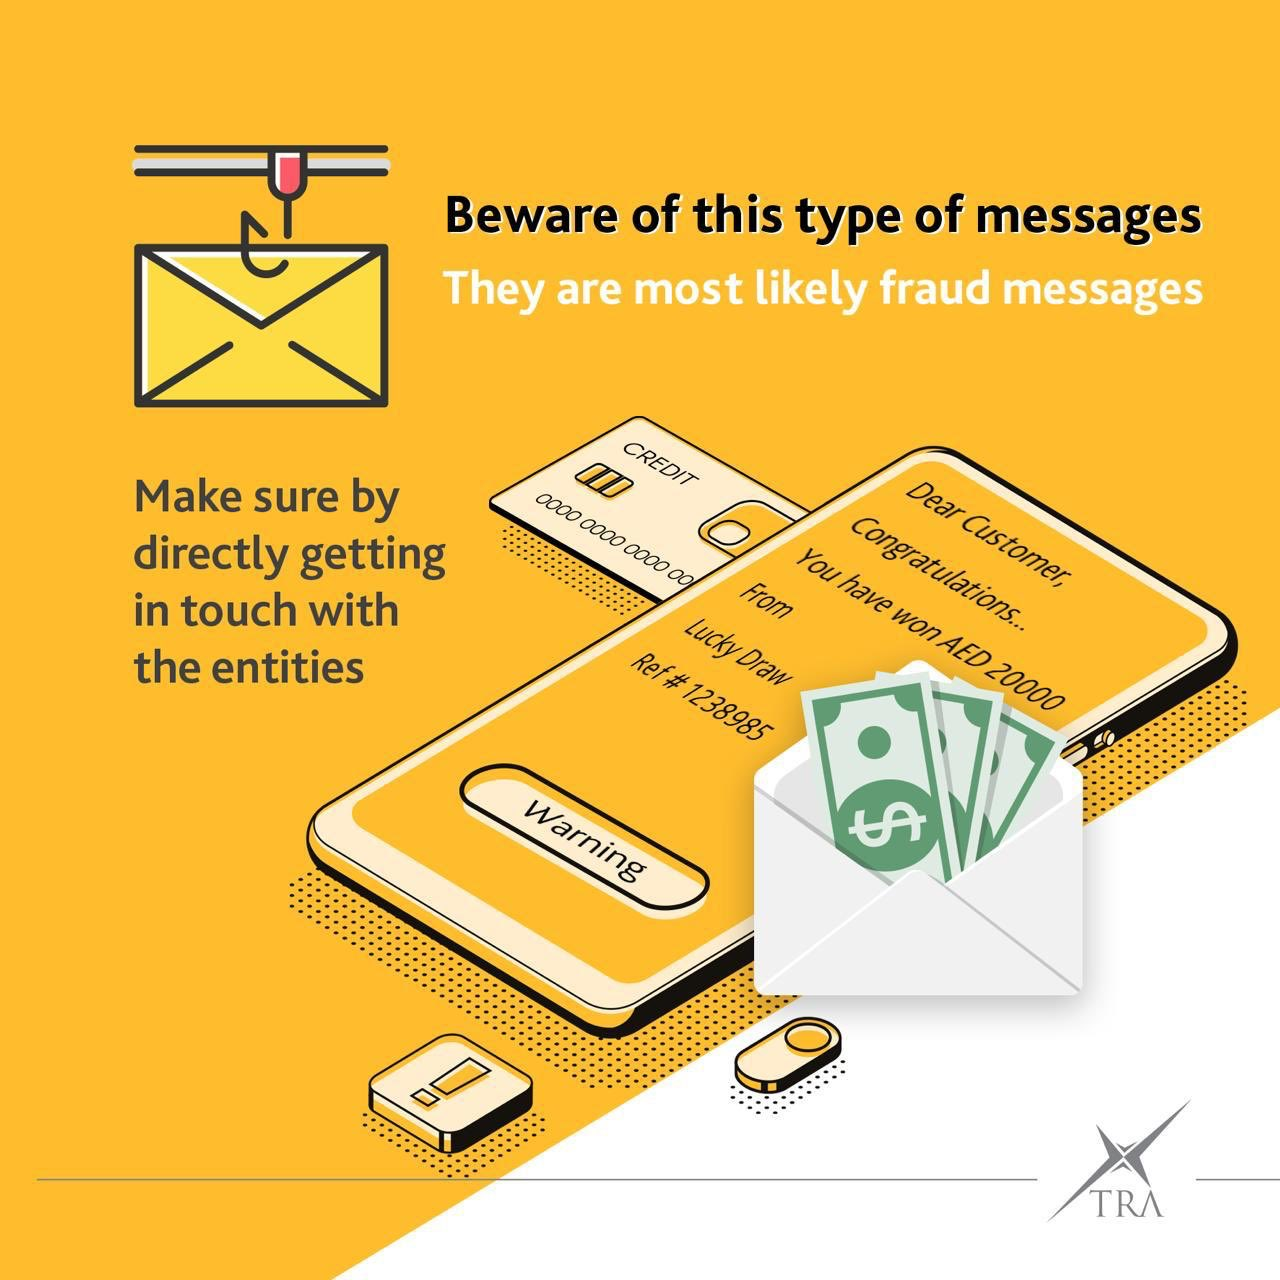 'Emotet' is a virus that is spreading fraudulent links through emails. Photo courtesy: Twitter/TheUAETRA